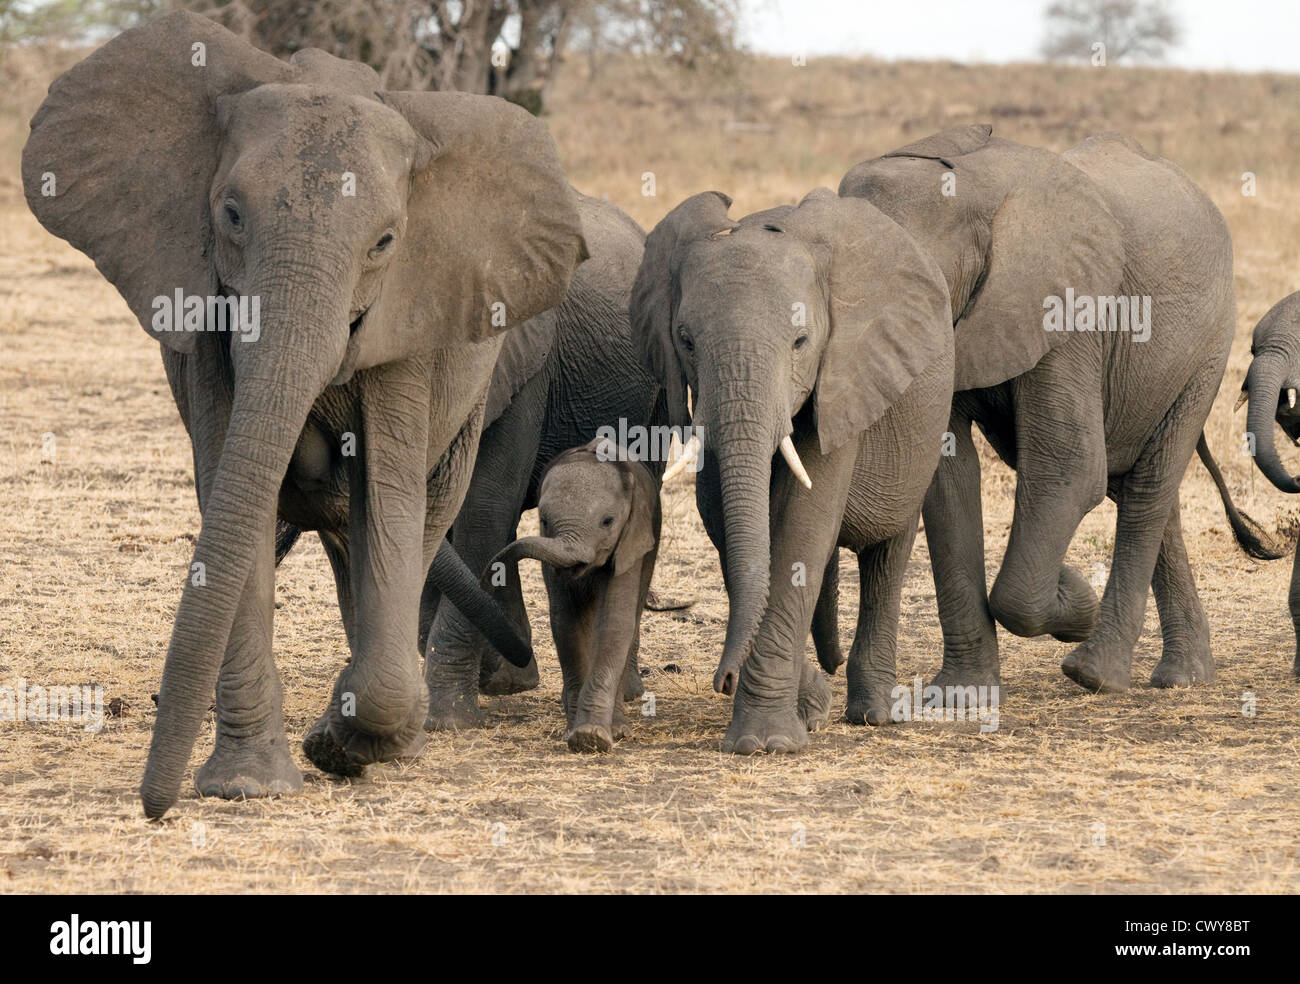 family-of-african-elephants-loxodonta-africana-selous-game-reserve-CWY8BT.jpg